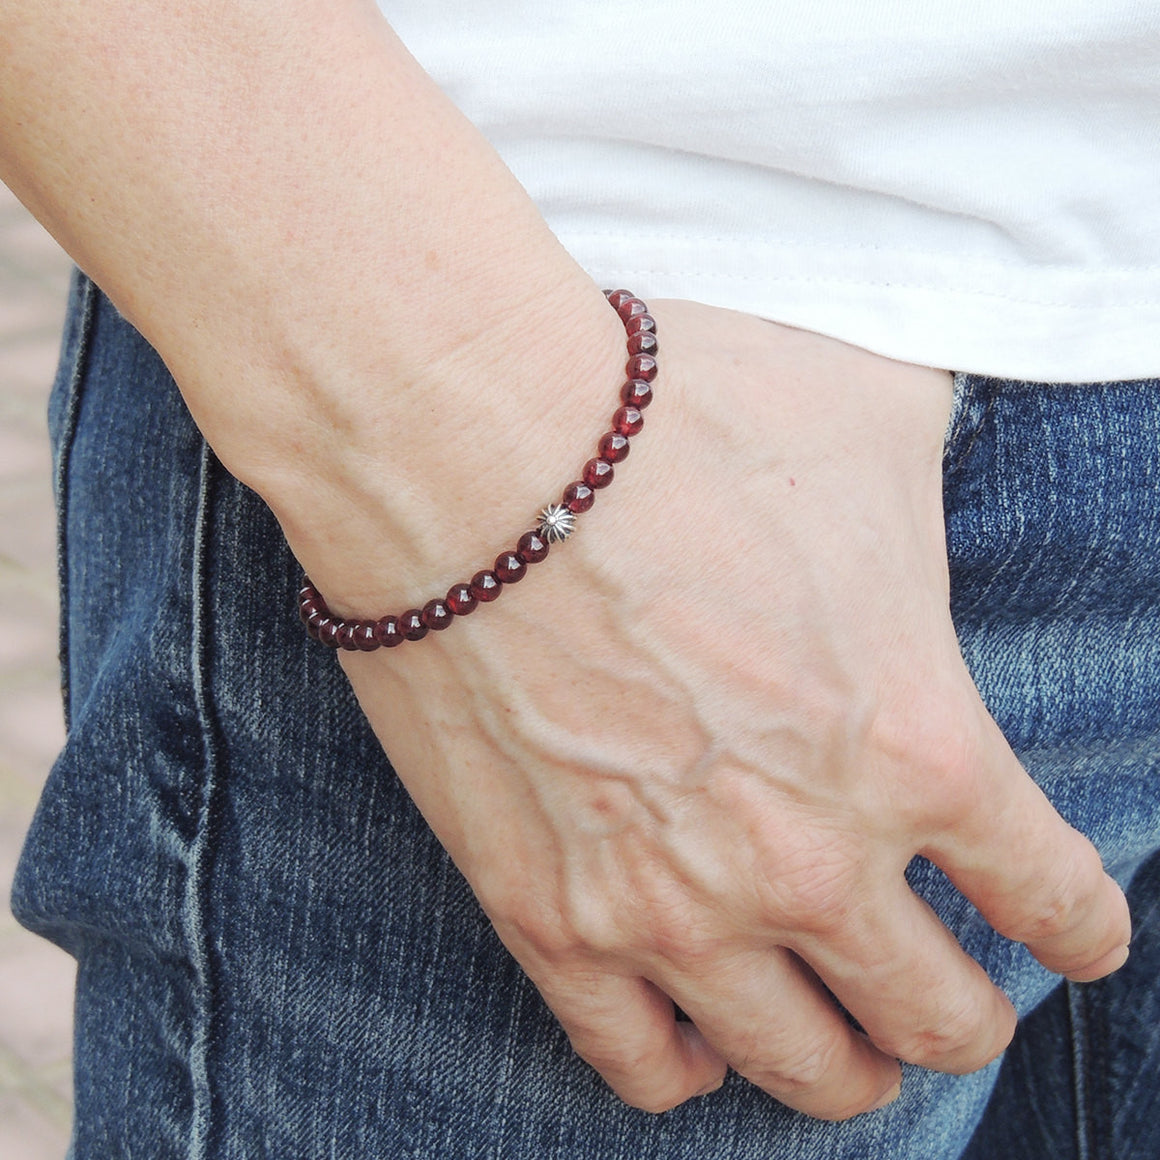 4mm Grade AAA Garnet Healing Gemstone Bracelet with S925 Sterling Silver Cross & Clasp - Handmade by Gem & Silver BR494